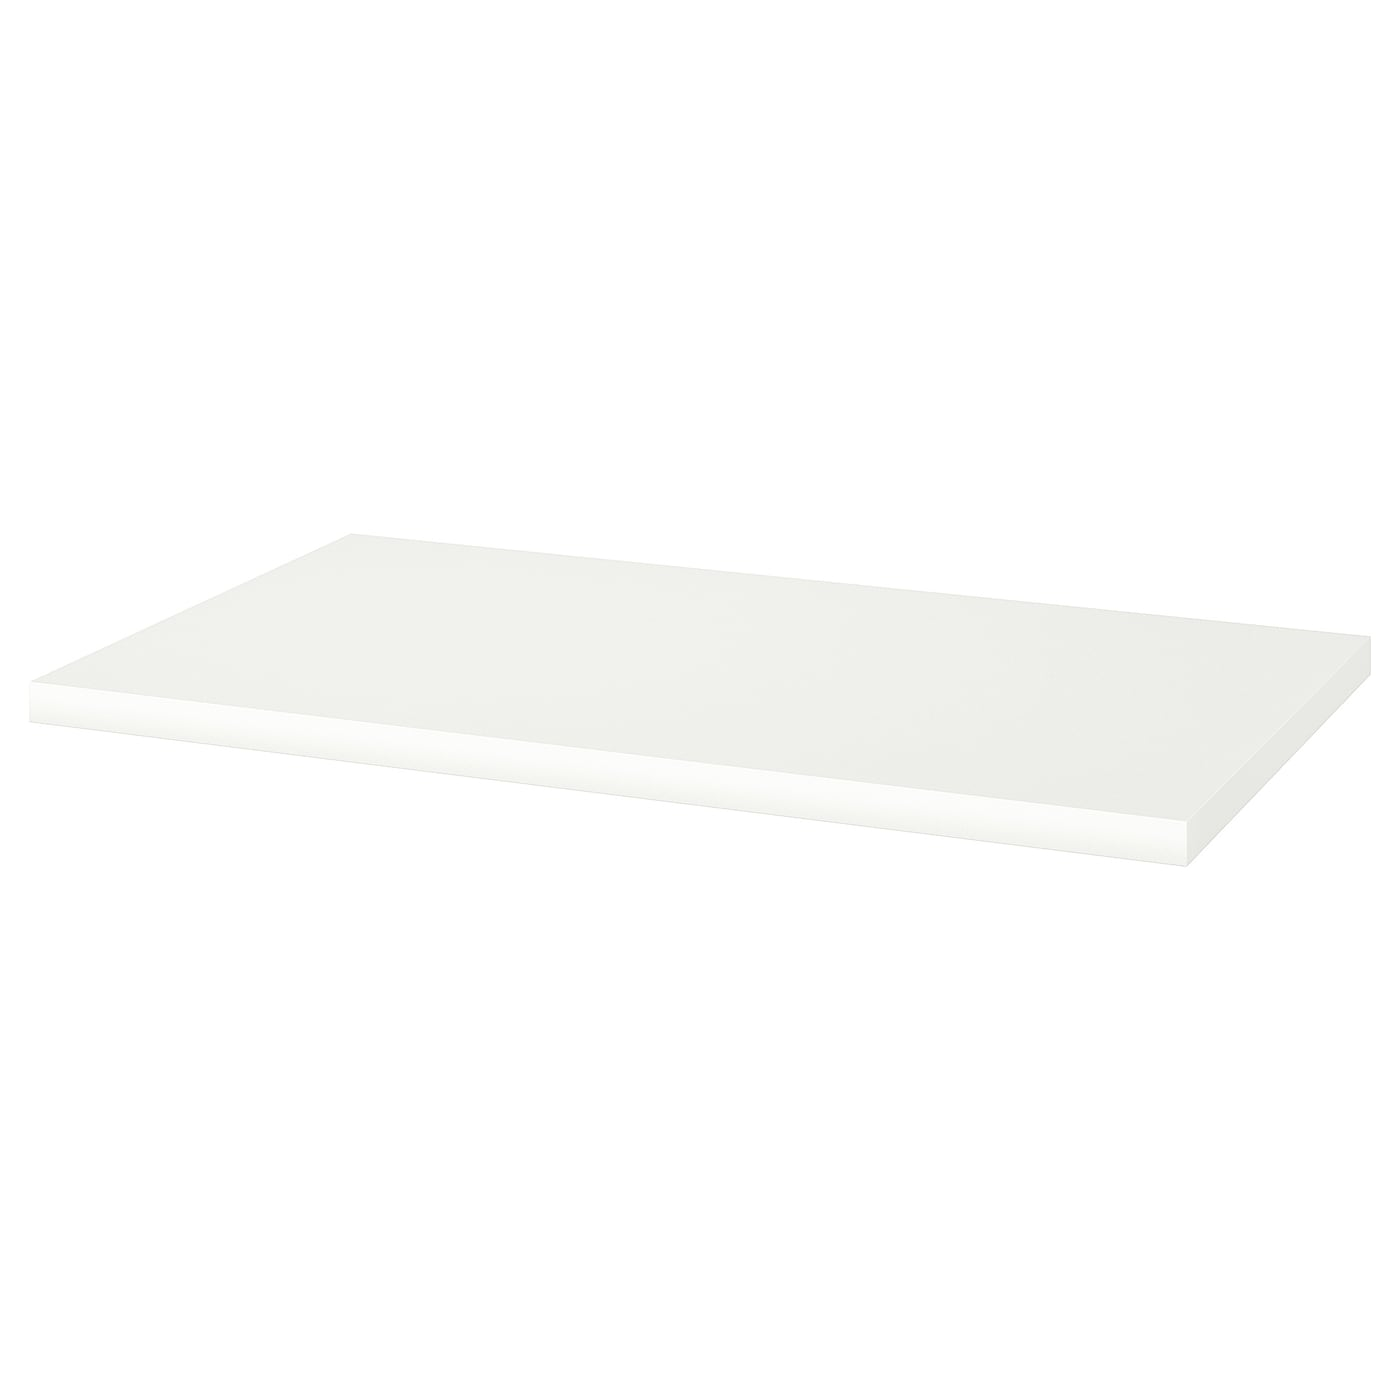 Picture of: Linnmon Tabletop White 39 3 8×23 5 8 Ikea